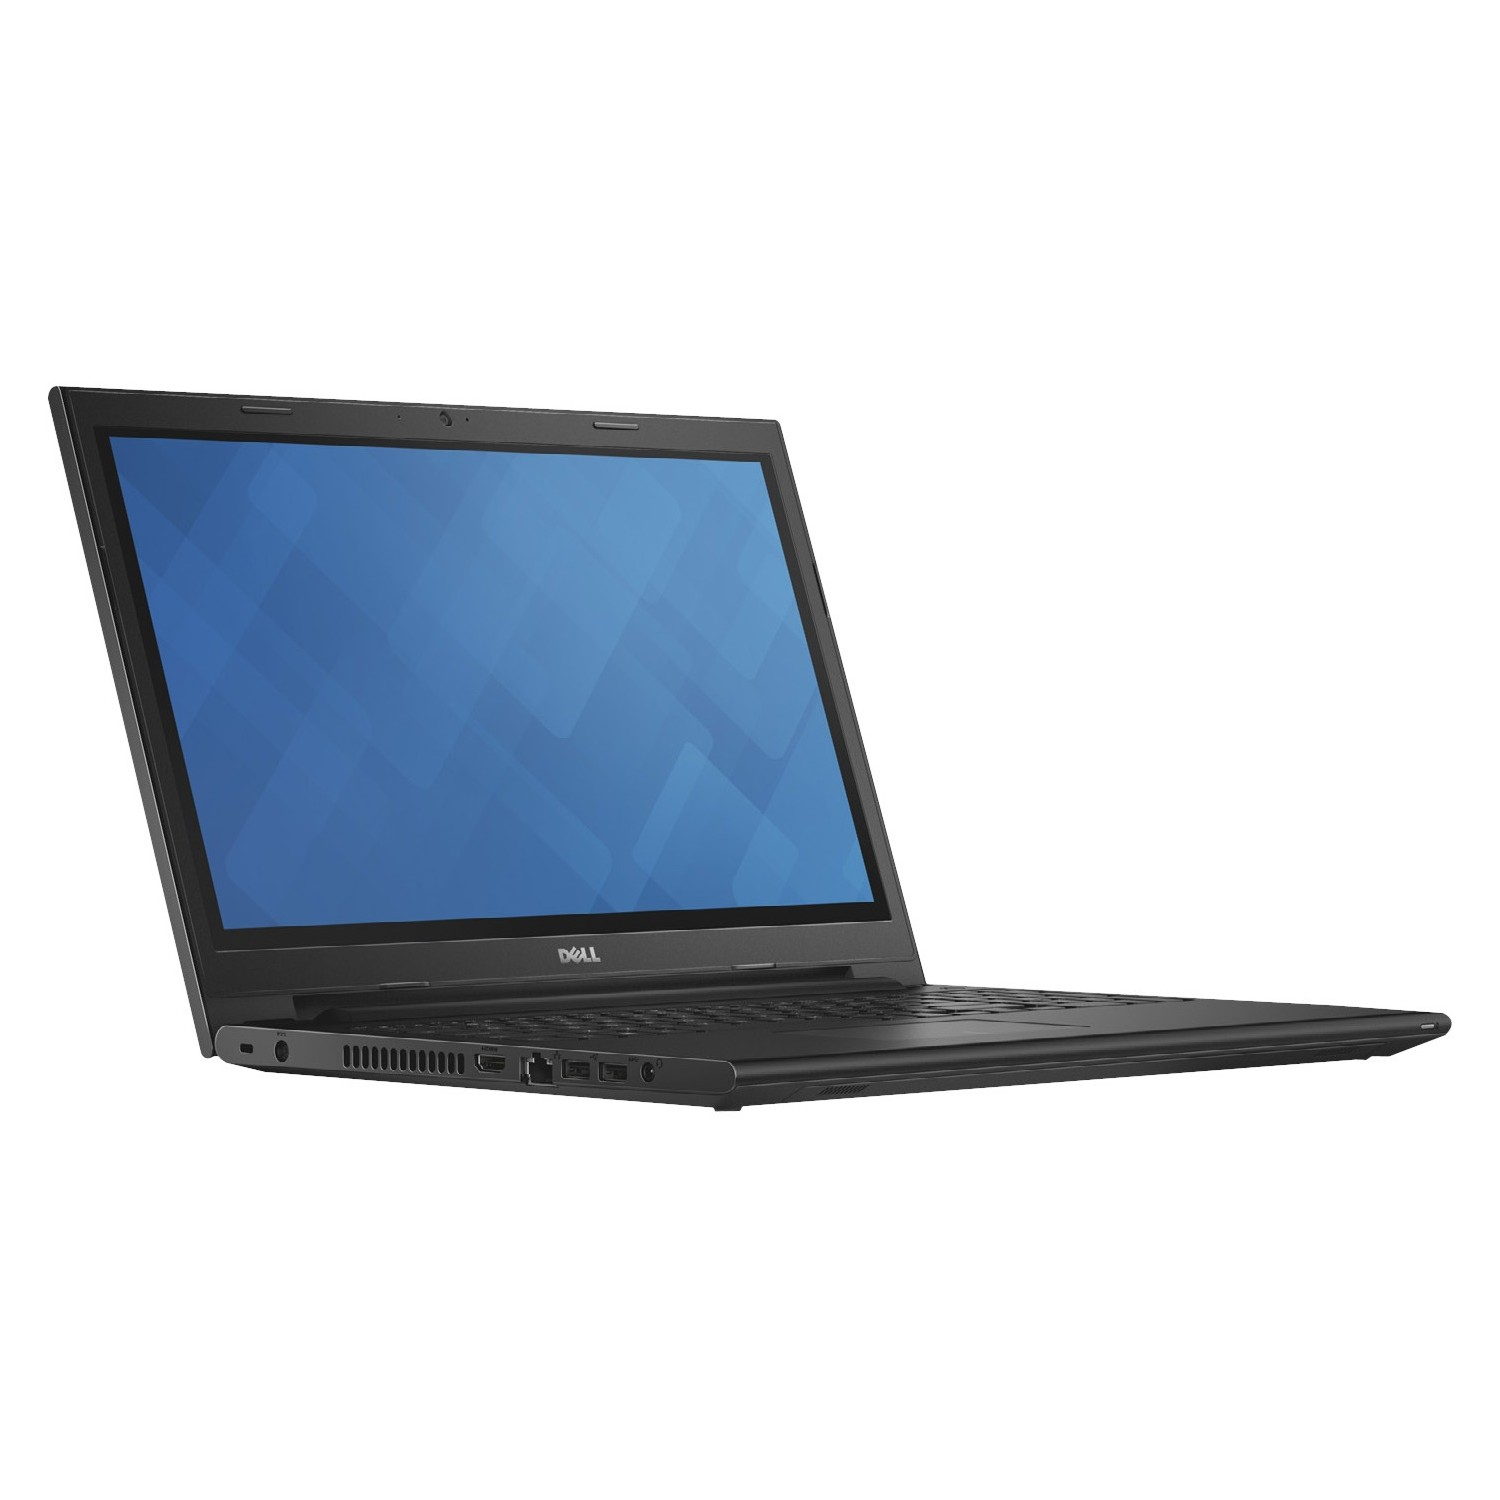 Dell Inspiron 15 (3541) Notebook